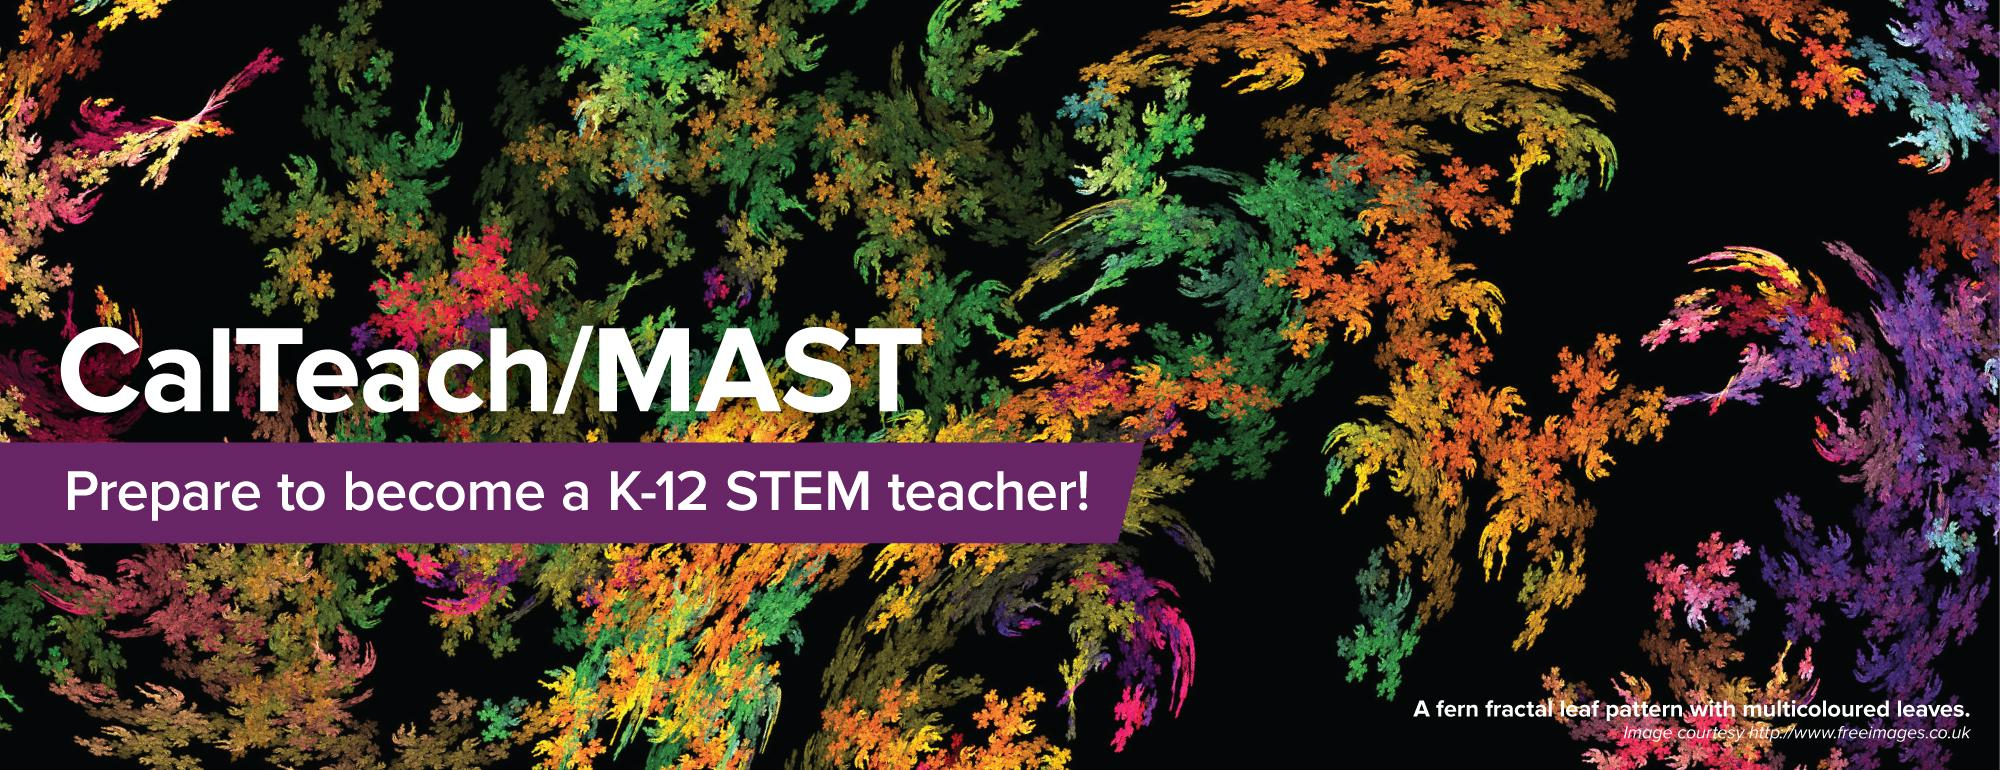 CalTeach/MAST: Prepare to become a K-12 STEM teacher